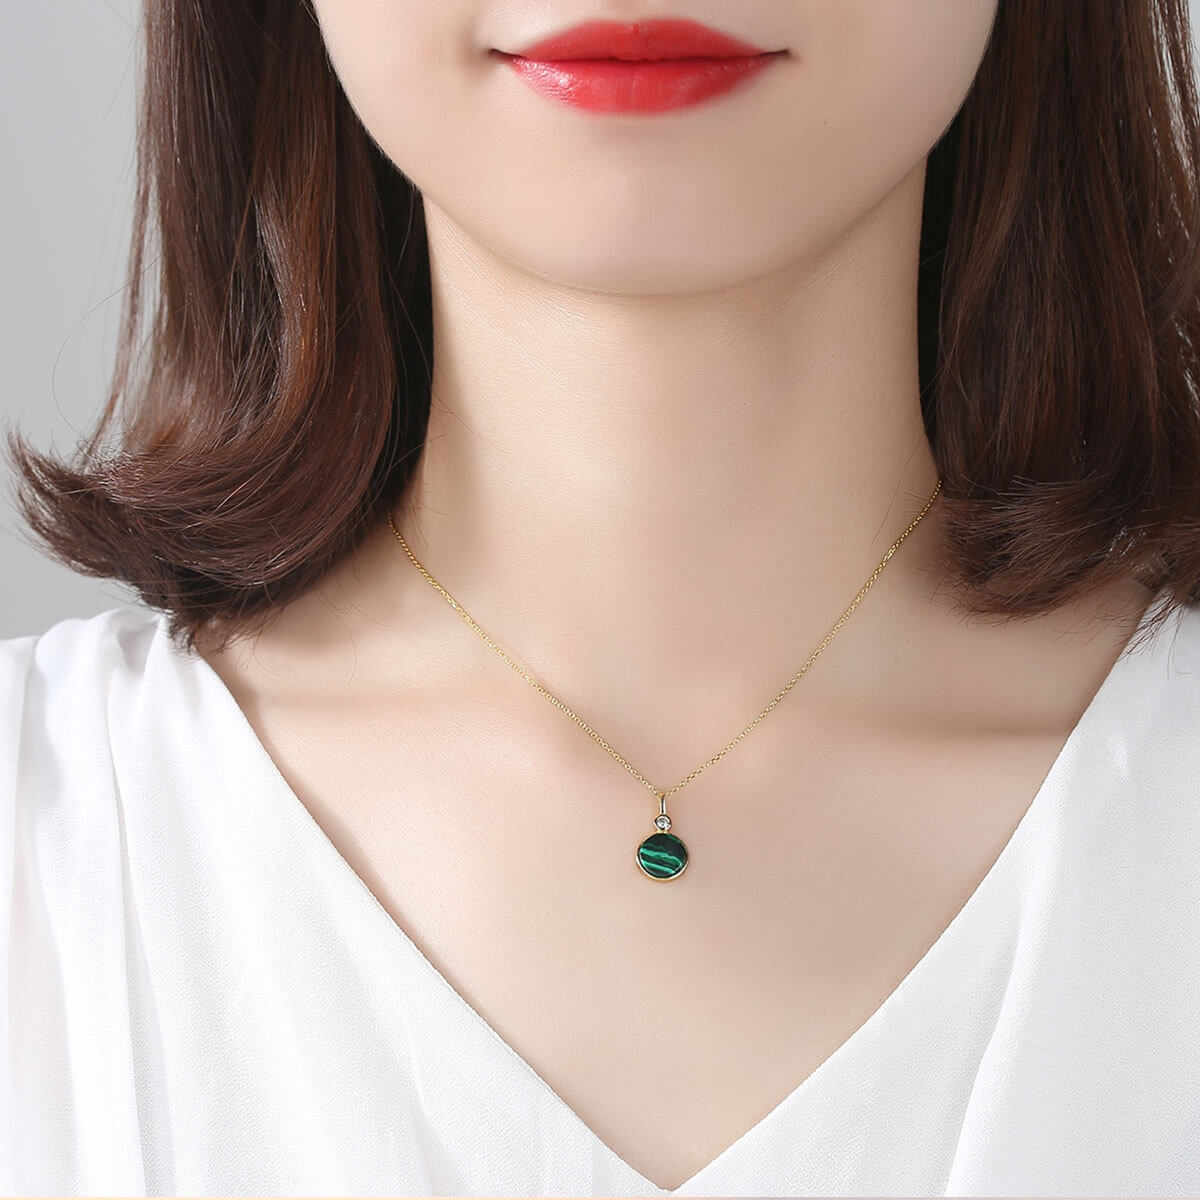 Model wears Round Malachite Lady's Sterling Silver Necklace